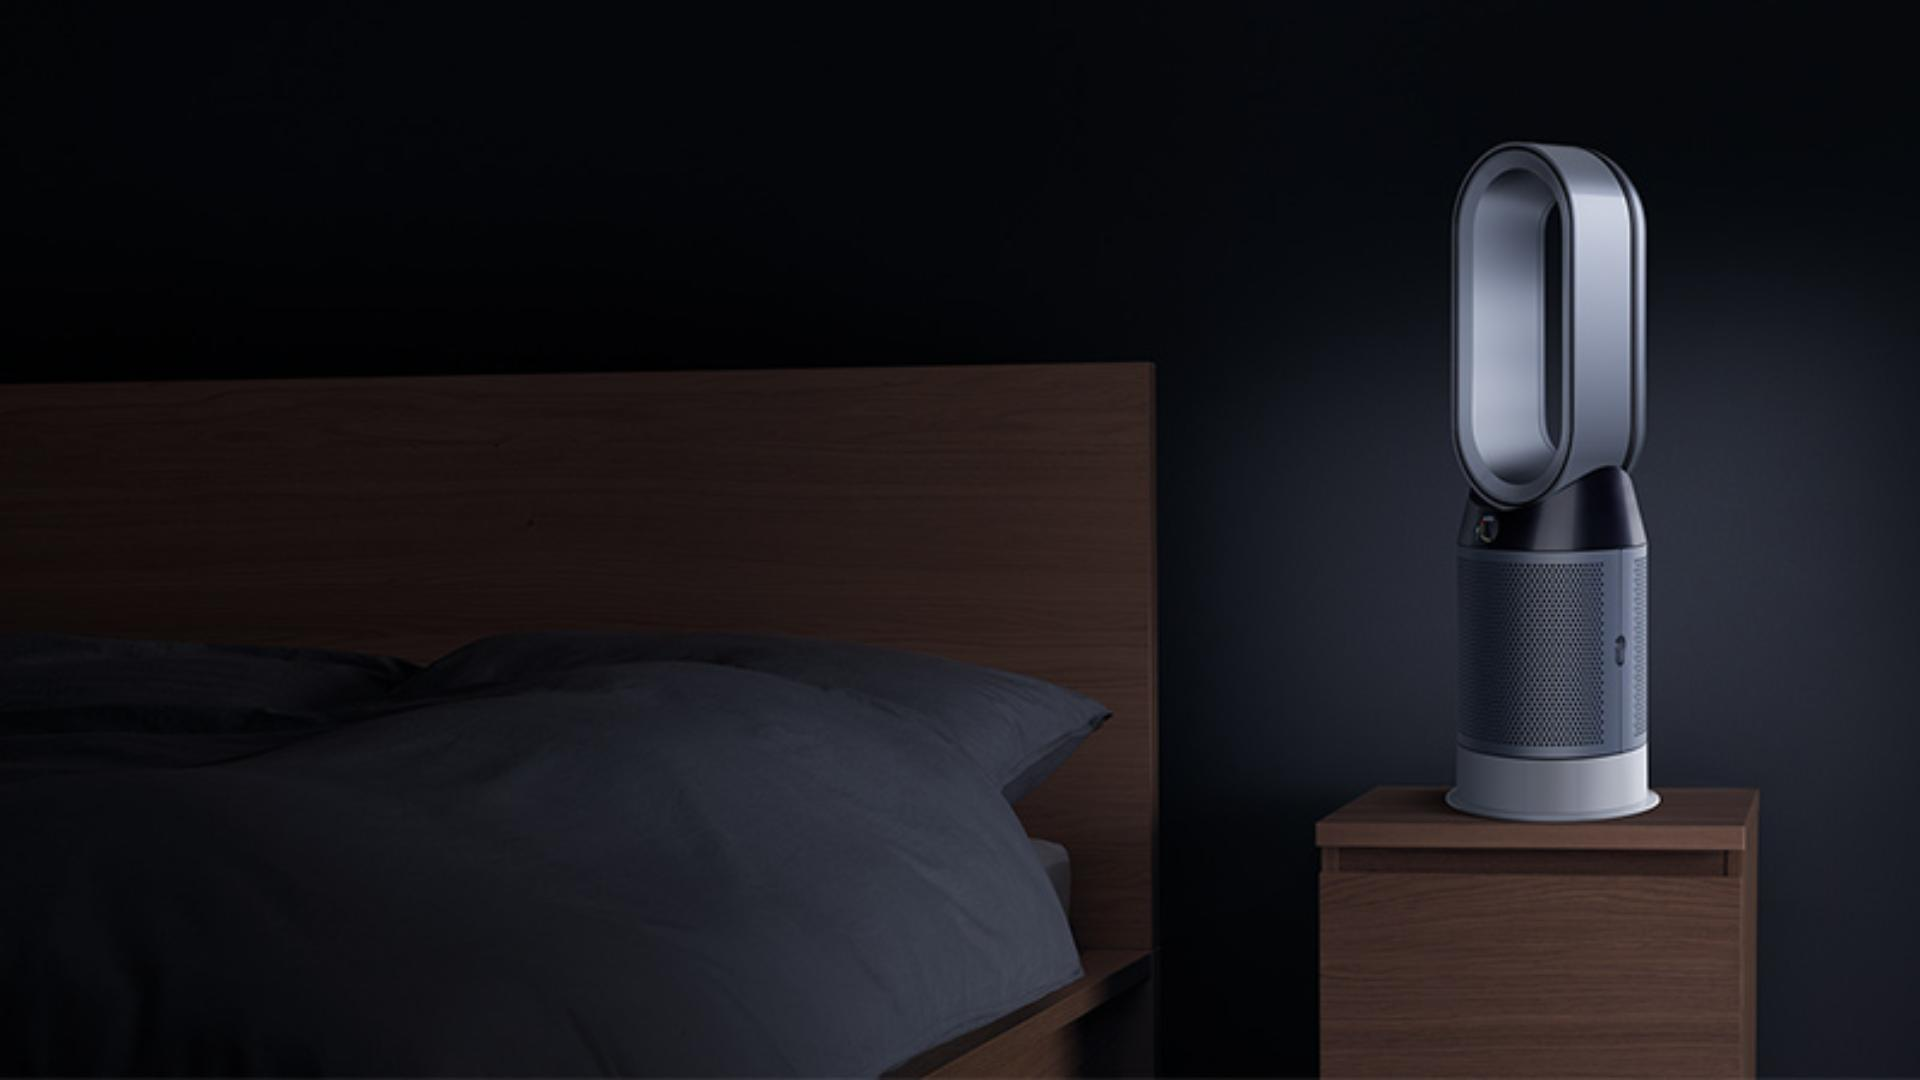 Dyson purifier on bedside table